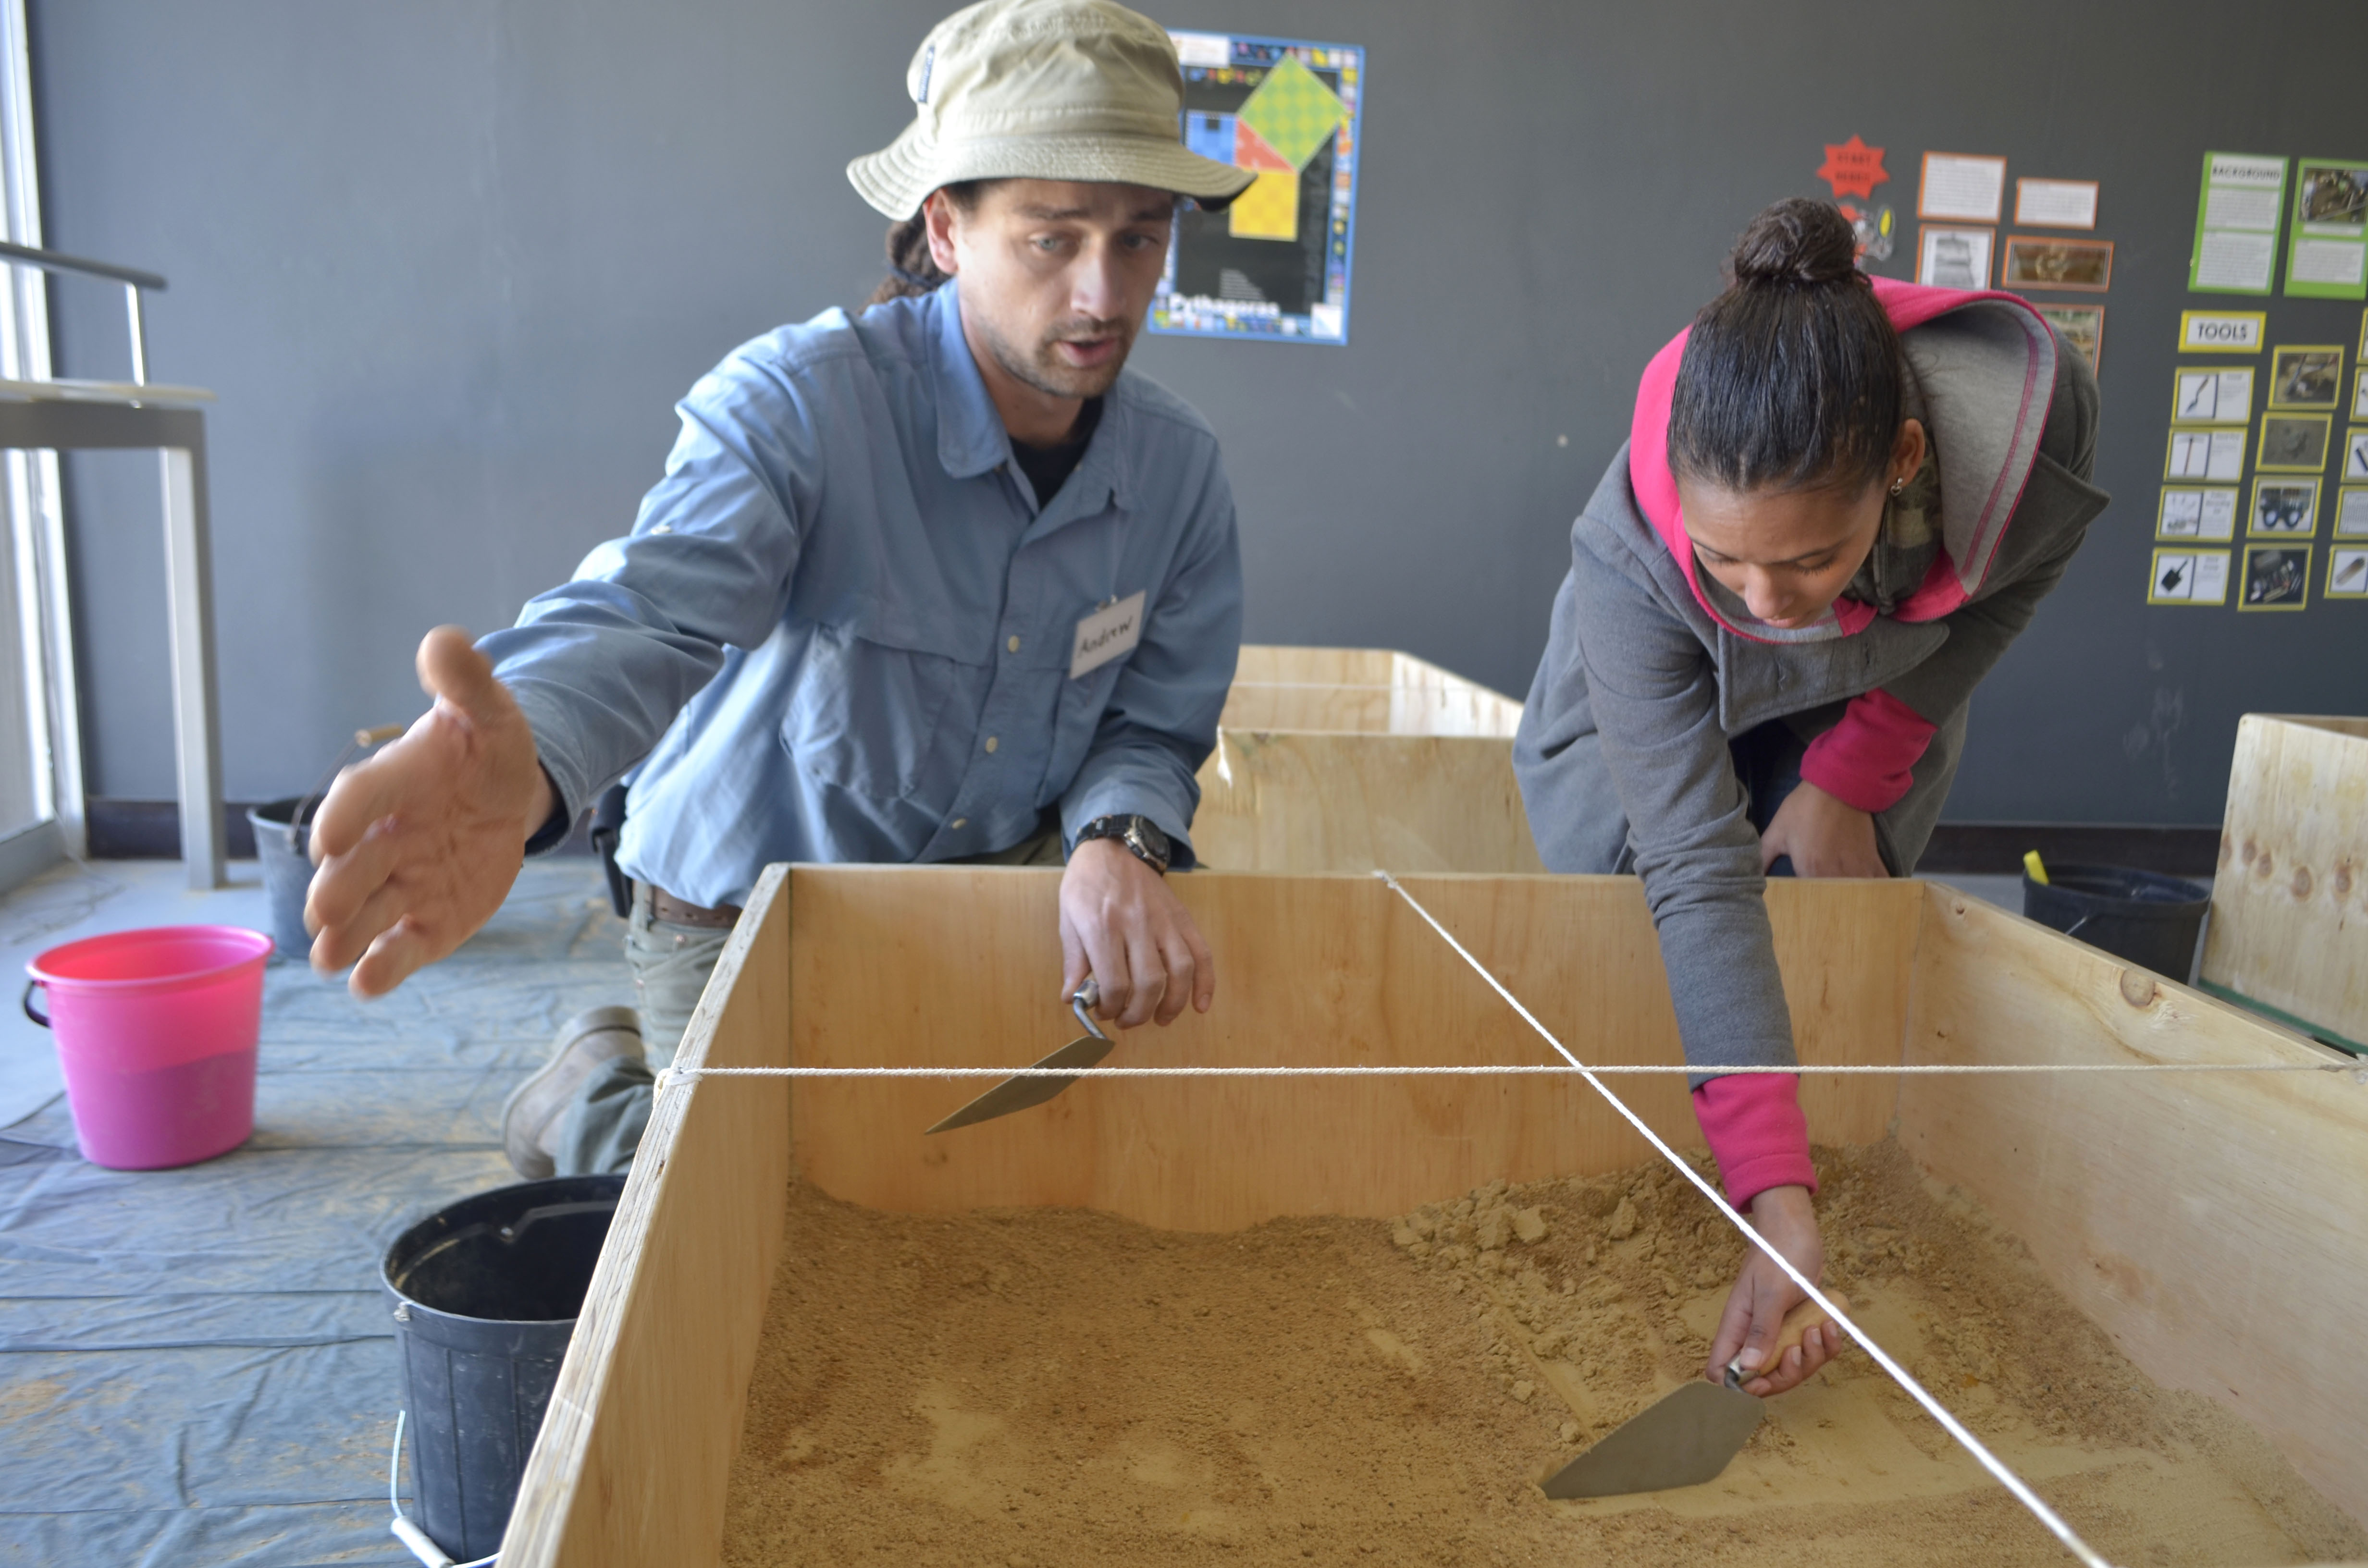 DIG IN: Andrew van der Heever shows a student how to excavate. Photo: Pheladi Sethusa